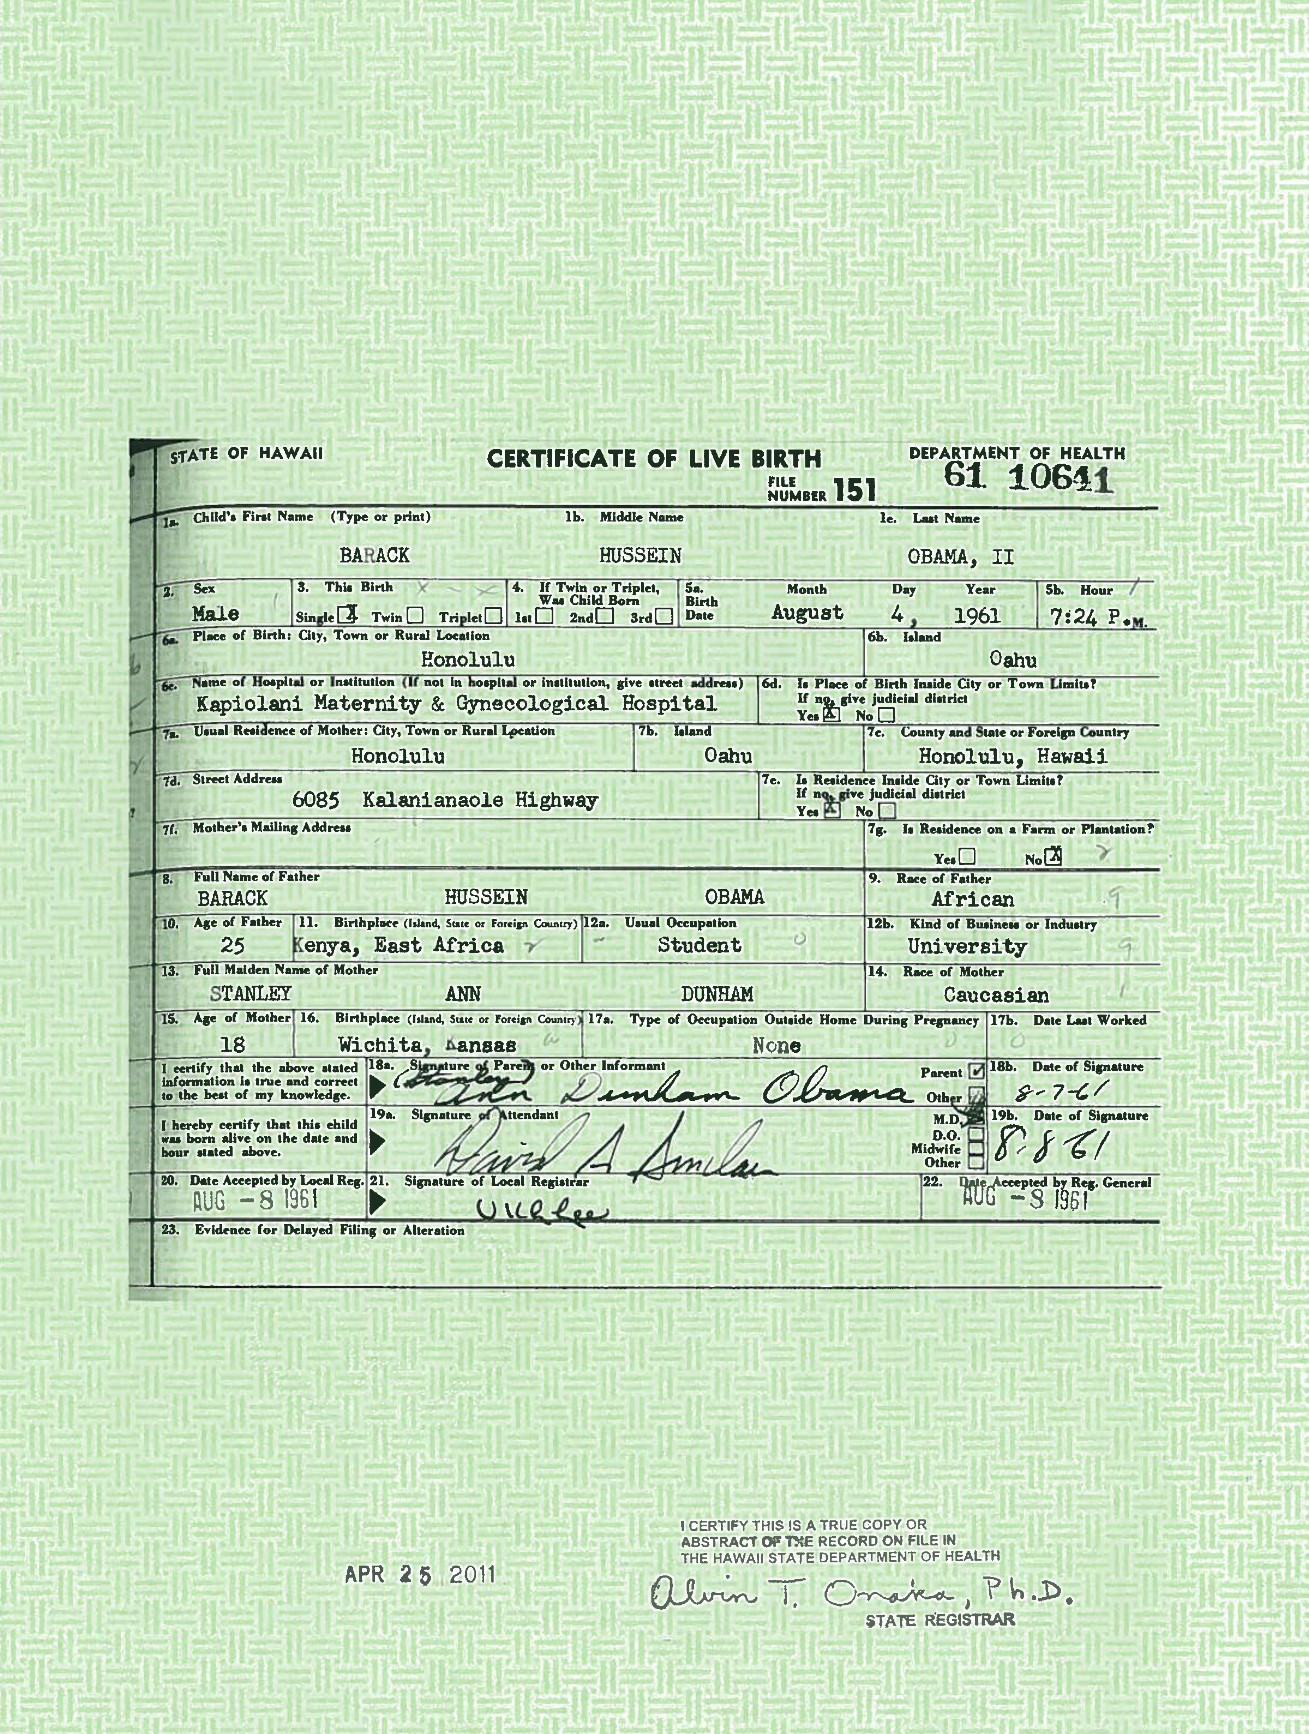 President_Barack_Obama%27s_long_form_birth_certificate.jpg